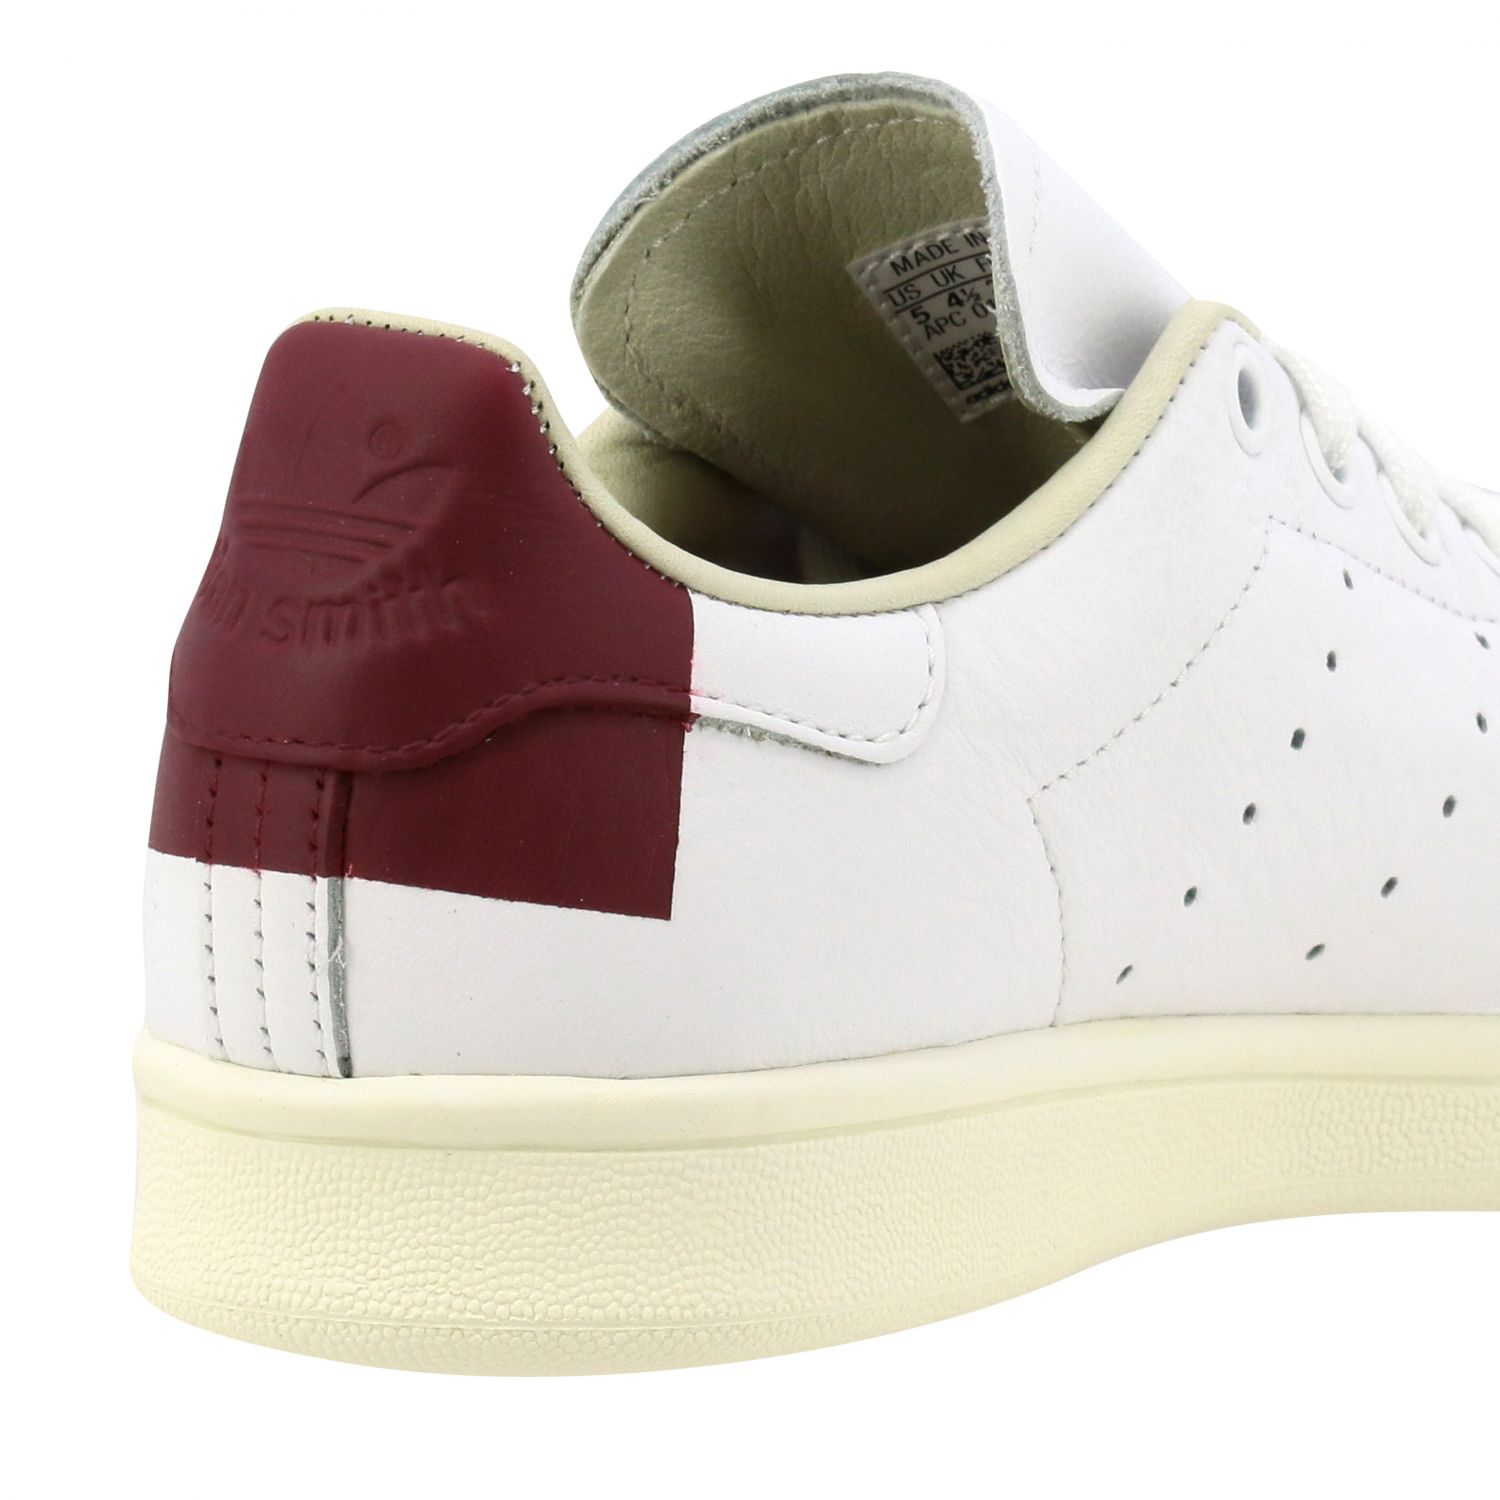 Sneakers Adidas Originals: Shoes women Adidas Originals white 5